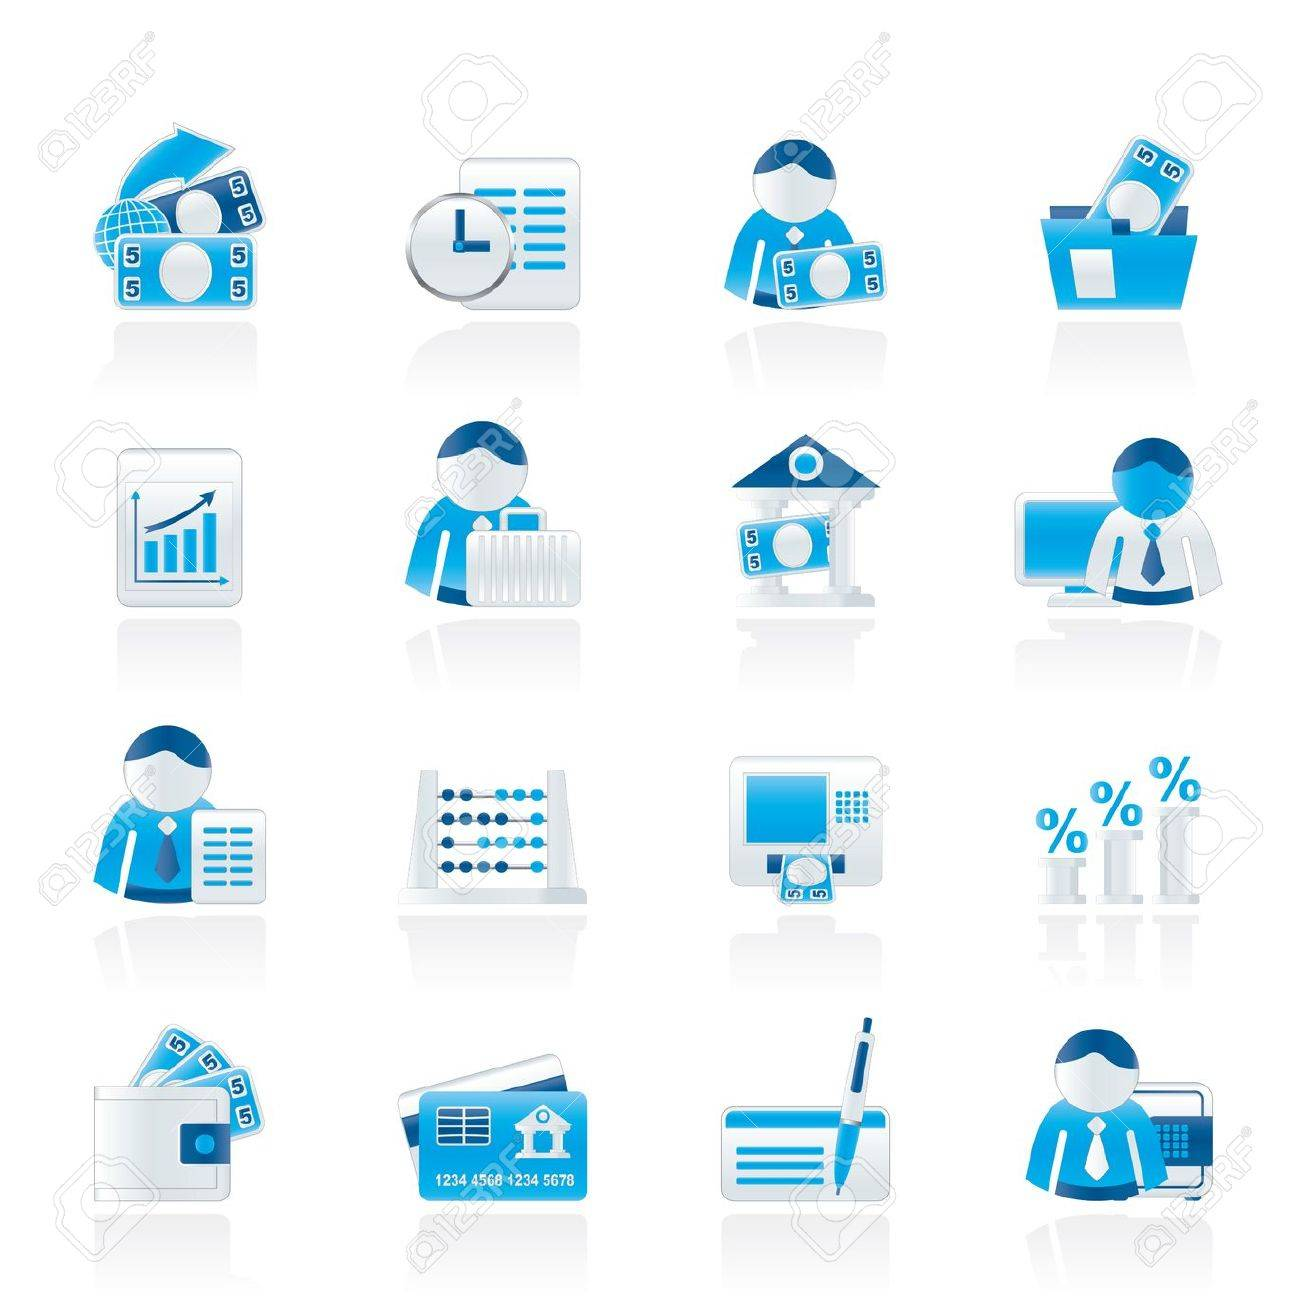 Bank and Finance Icons - Vector Icon Set Stock Vector - 11275111